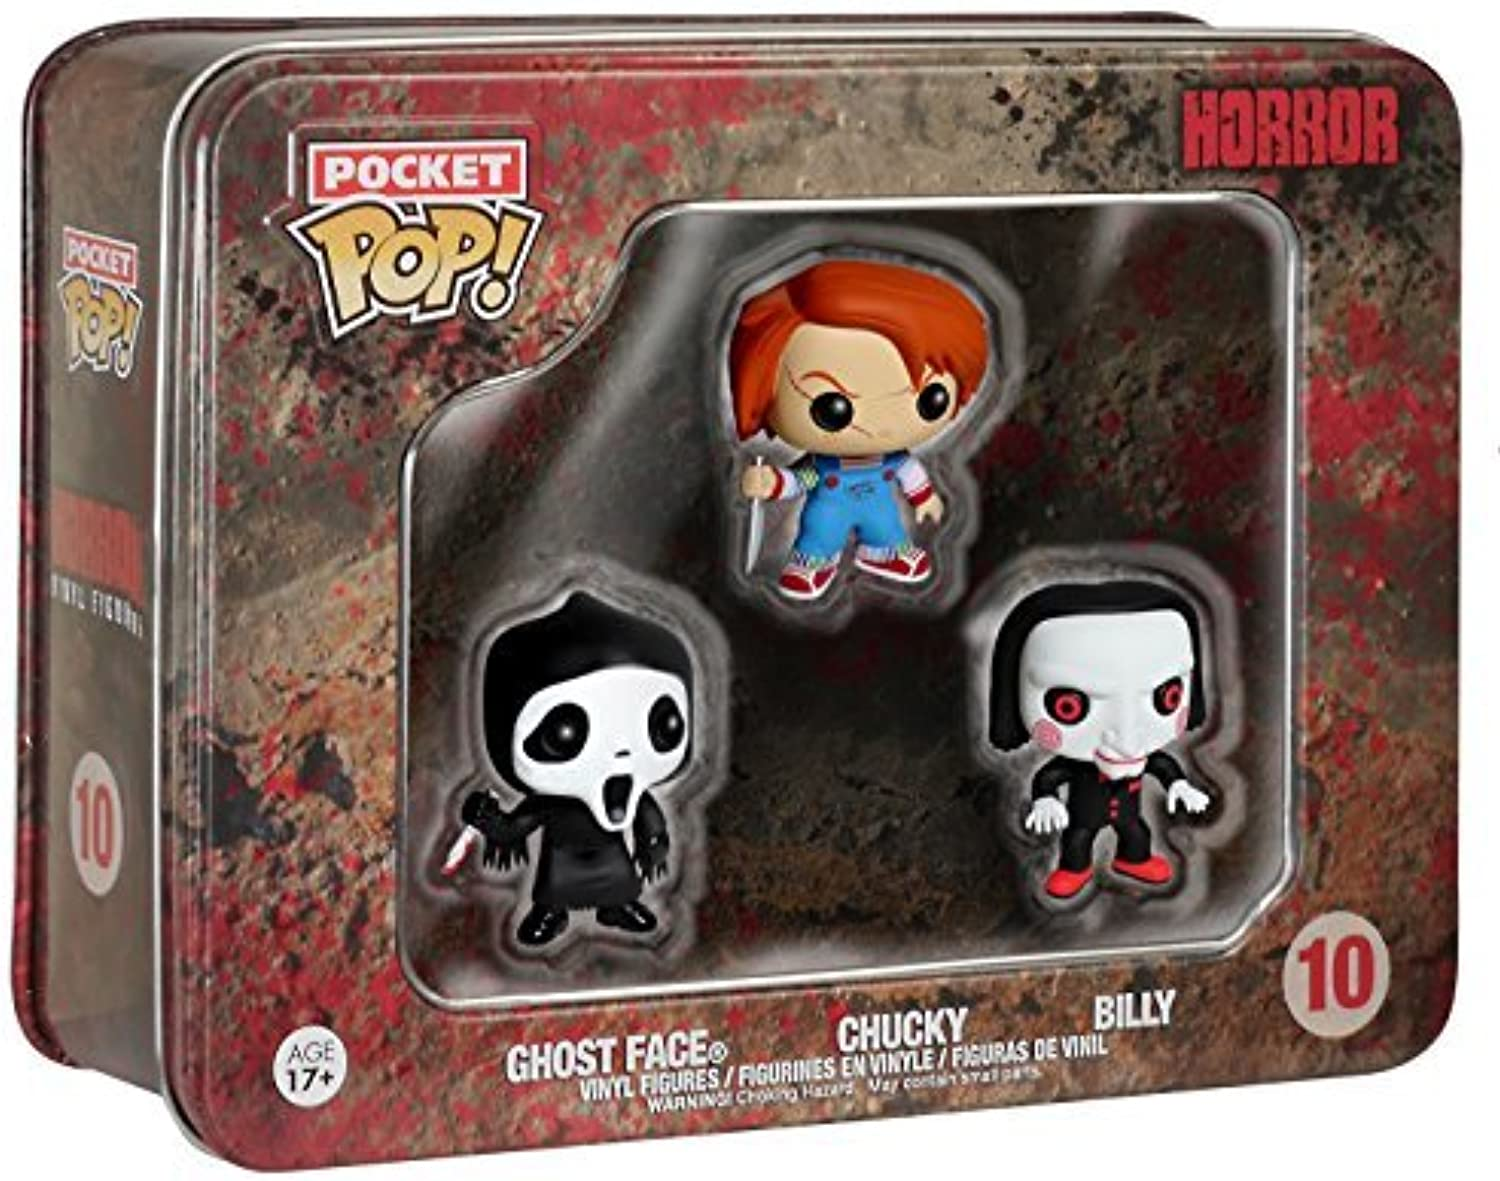 Horror  Ghost Face, Chucky, Billy by FunKo